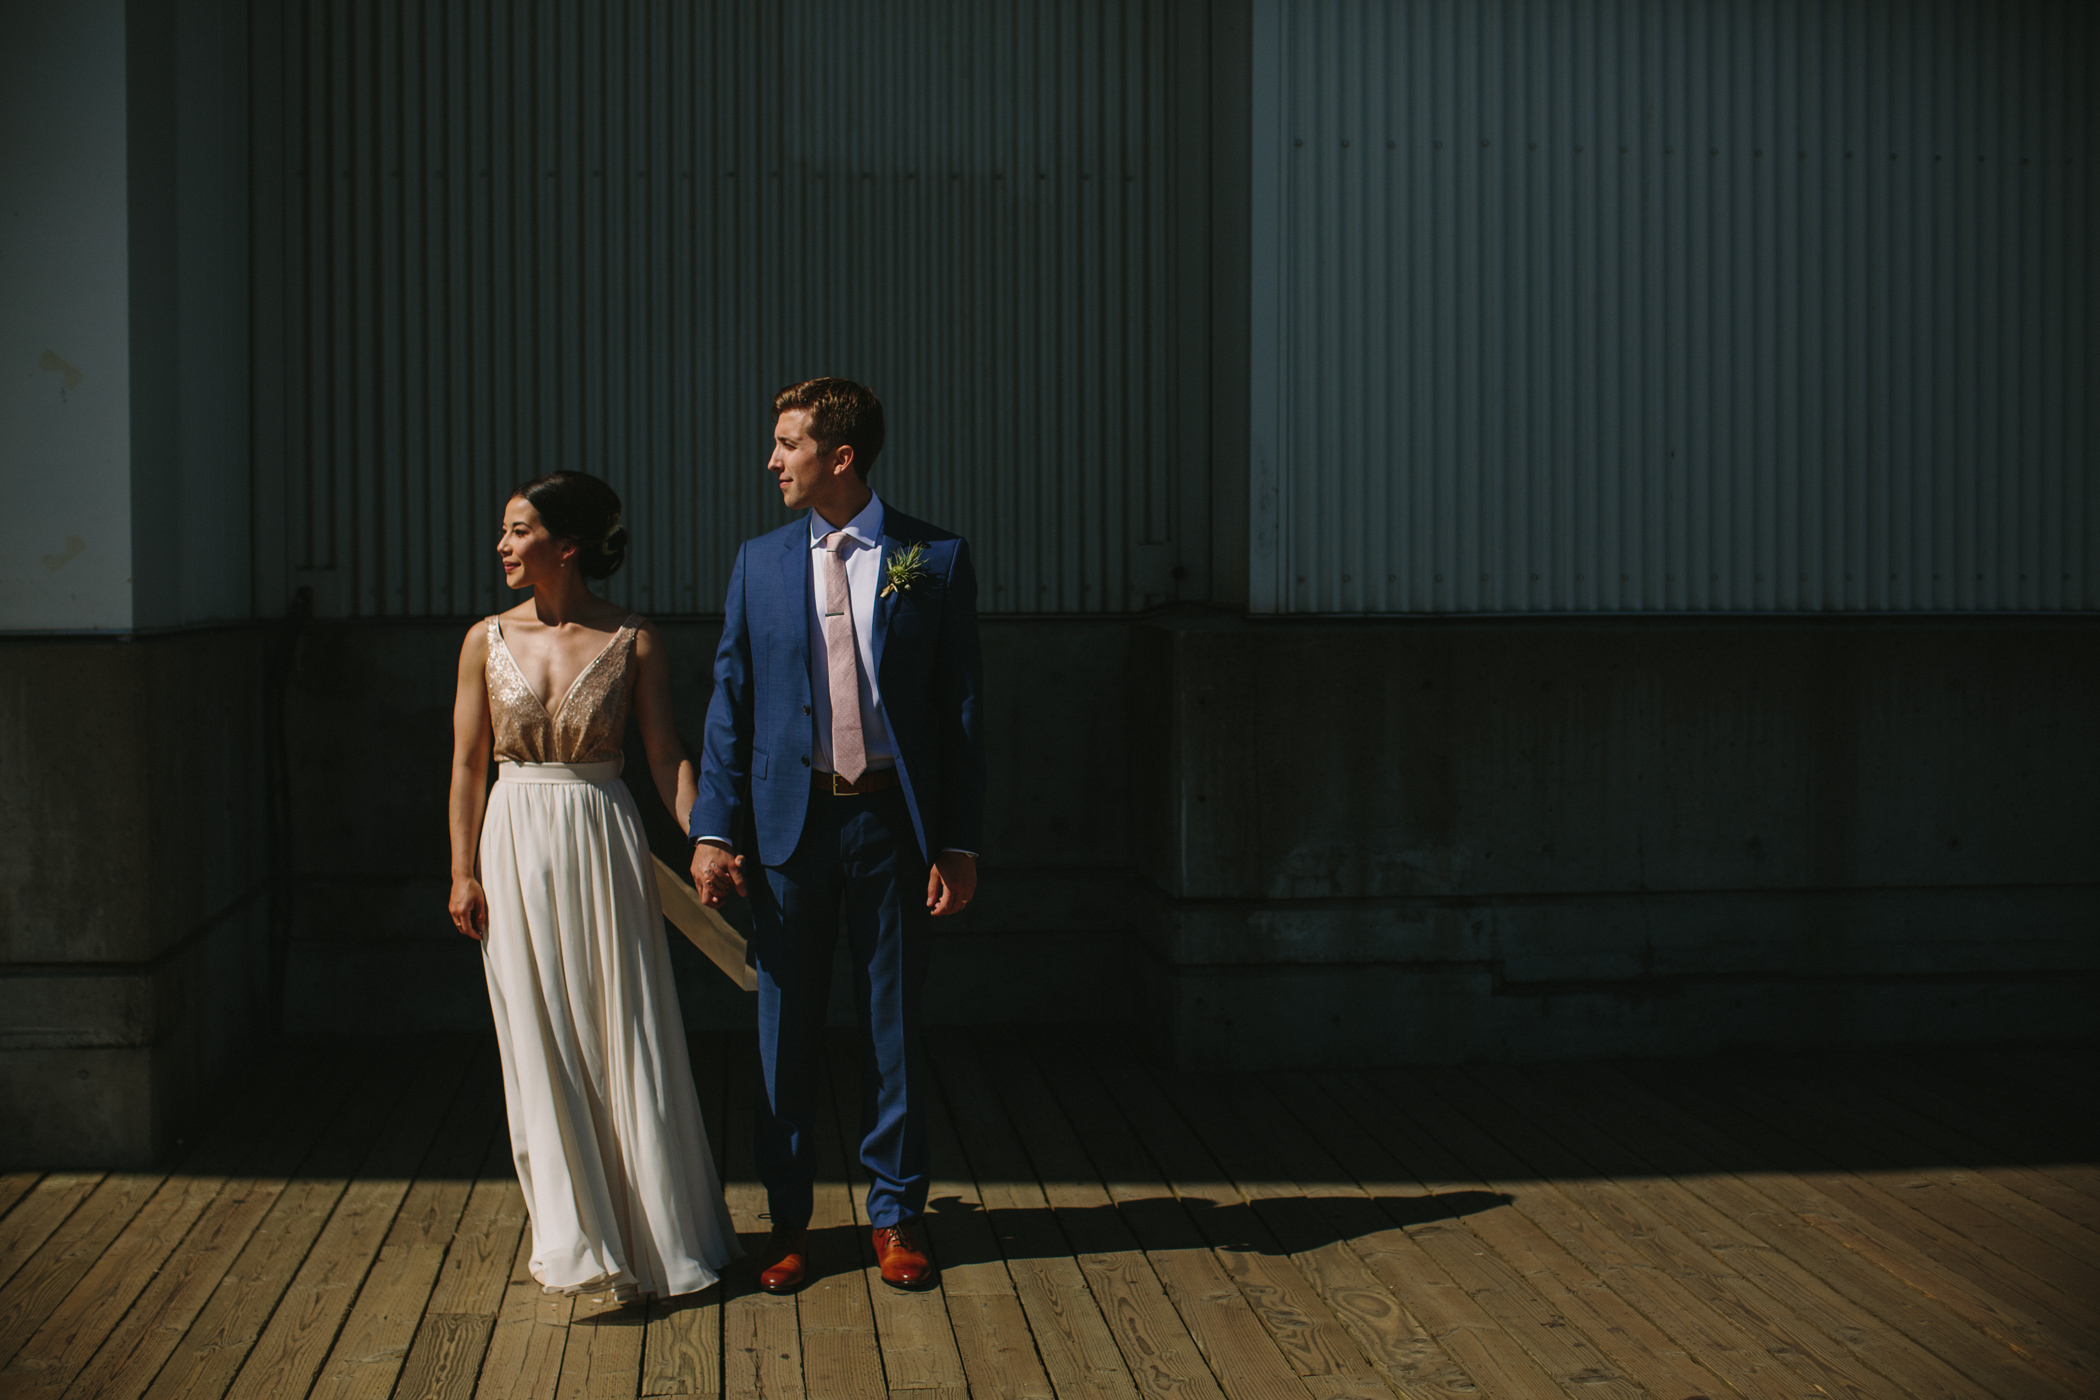 New Westminster Boardwalk Bride and Groom